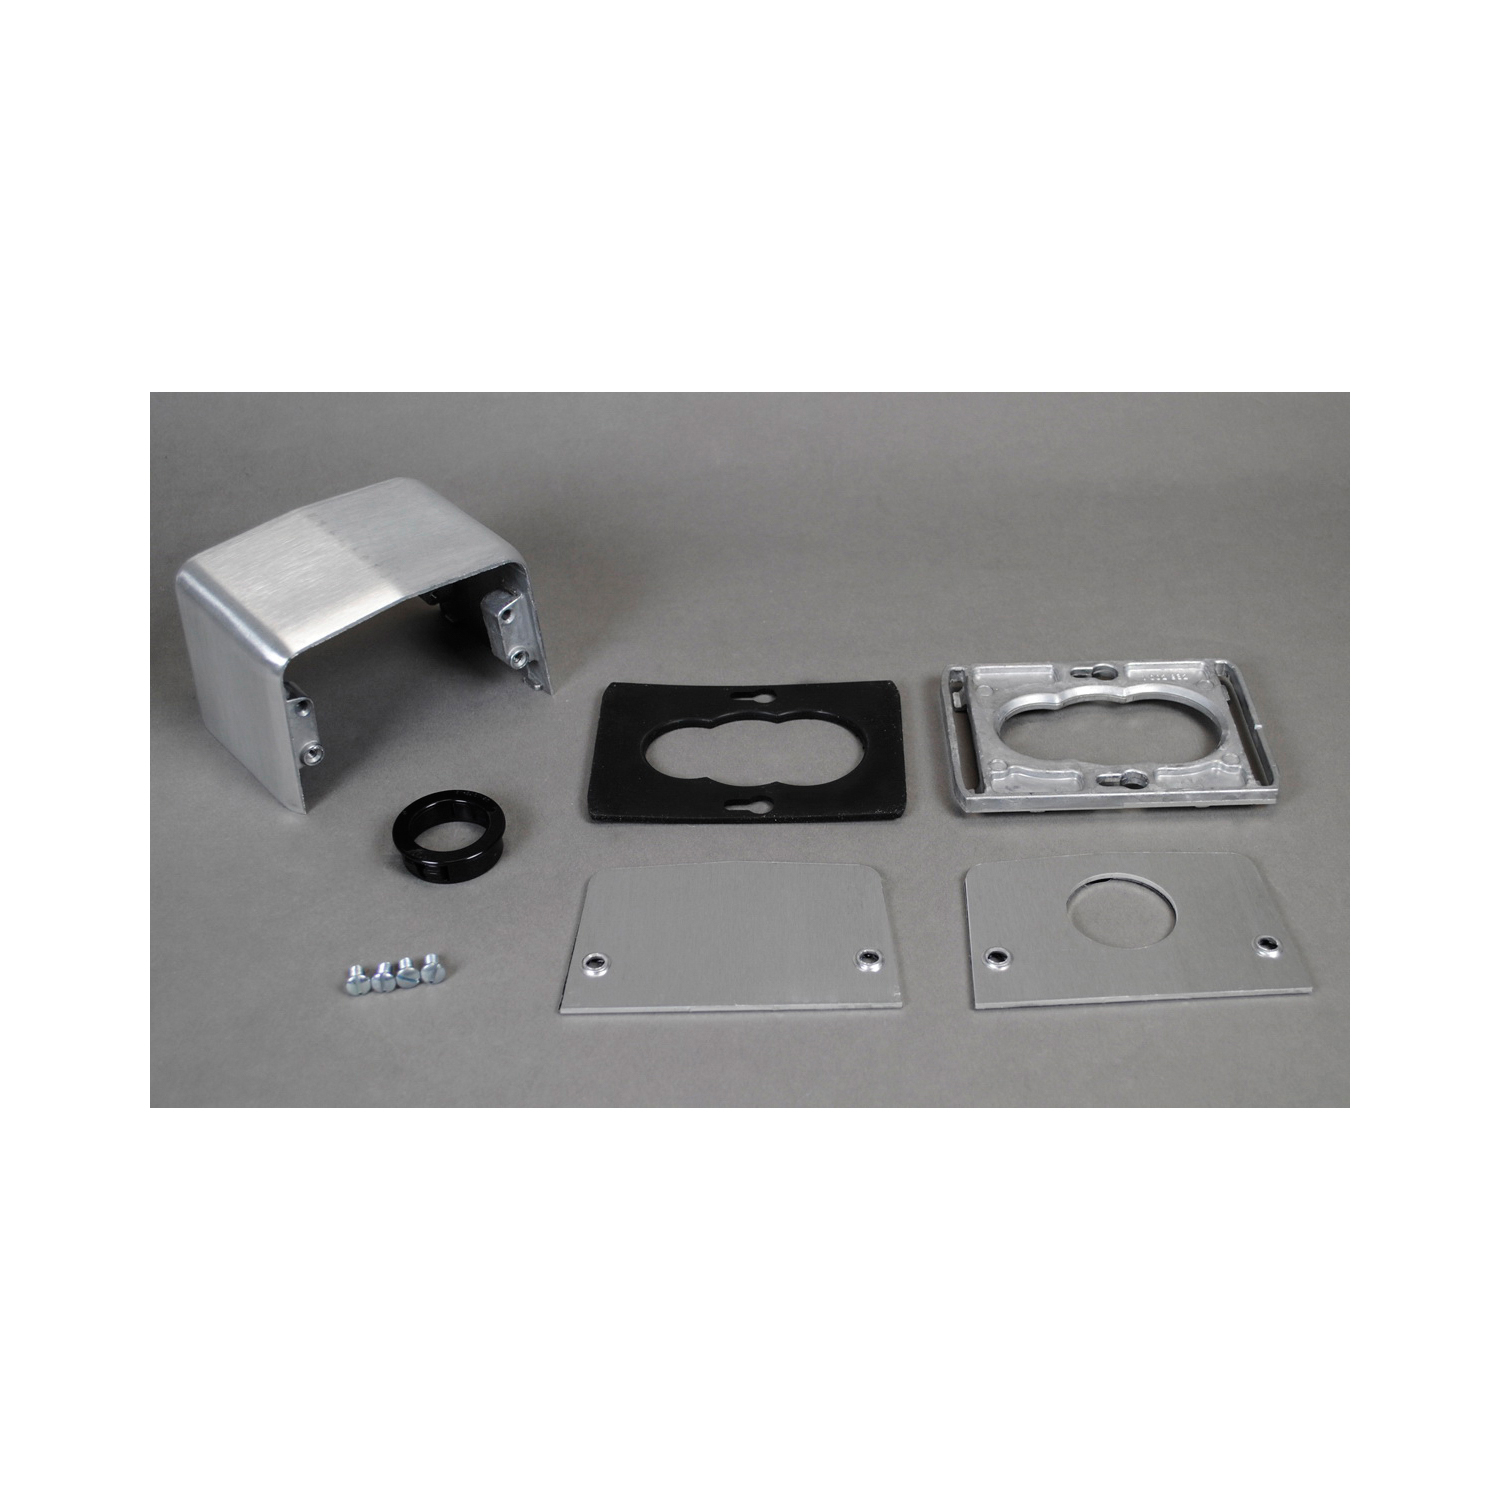 Legrand-Wiremold 525A PDSTL FITTING 1IN OPNG ONE | Steiner Electric ...